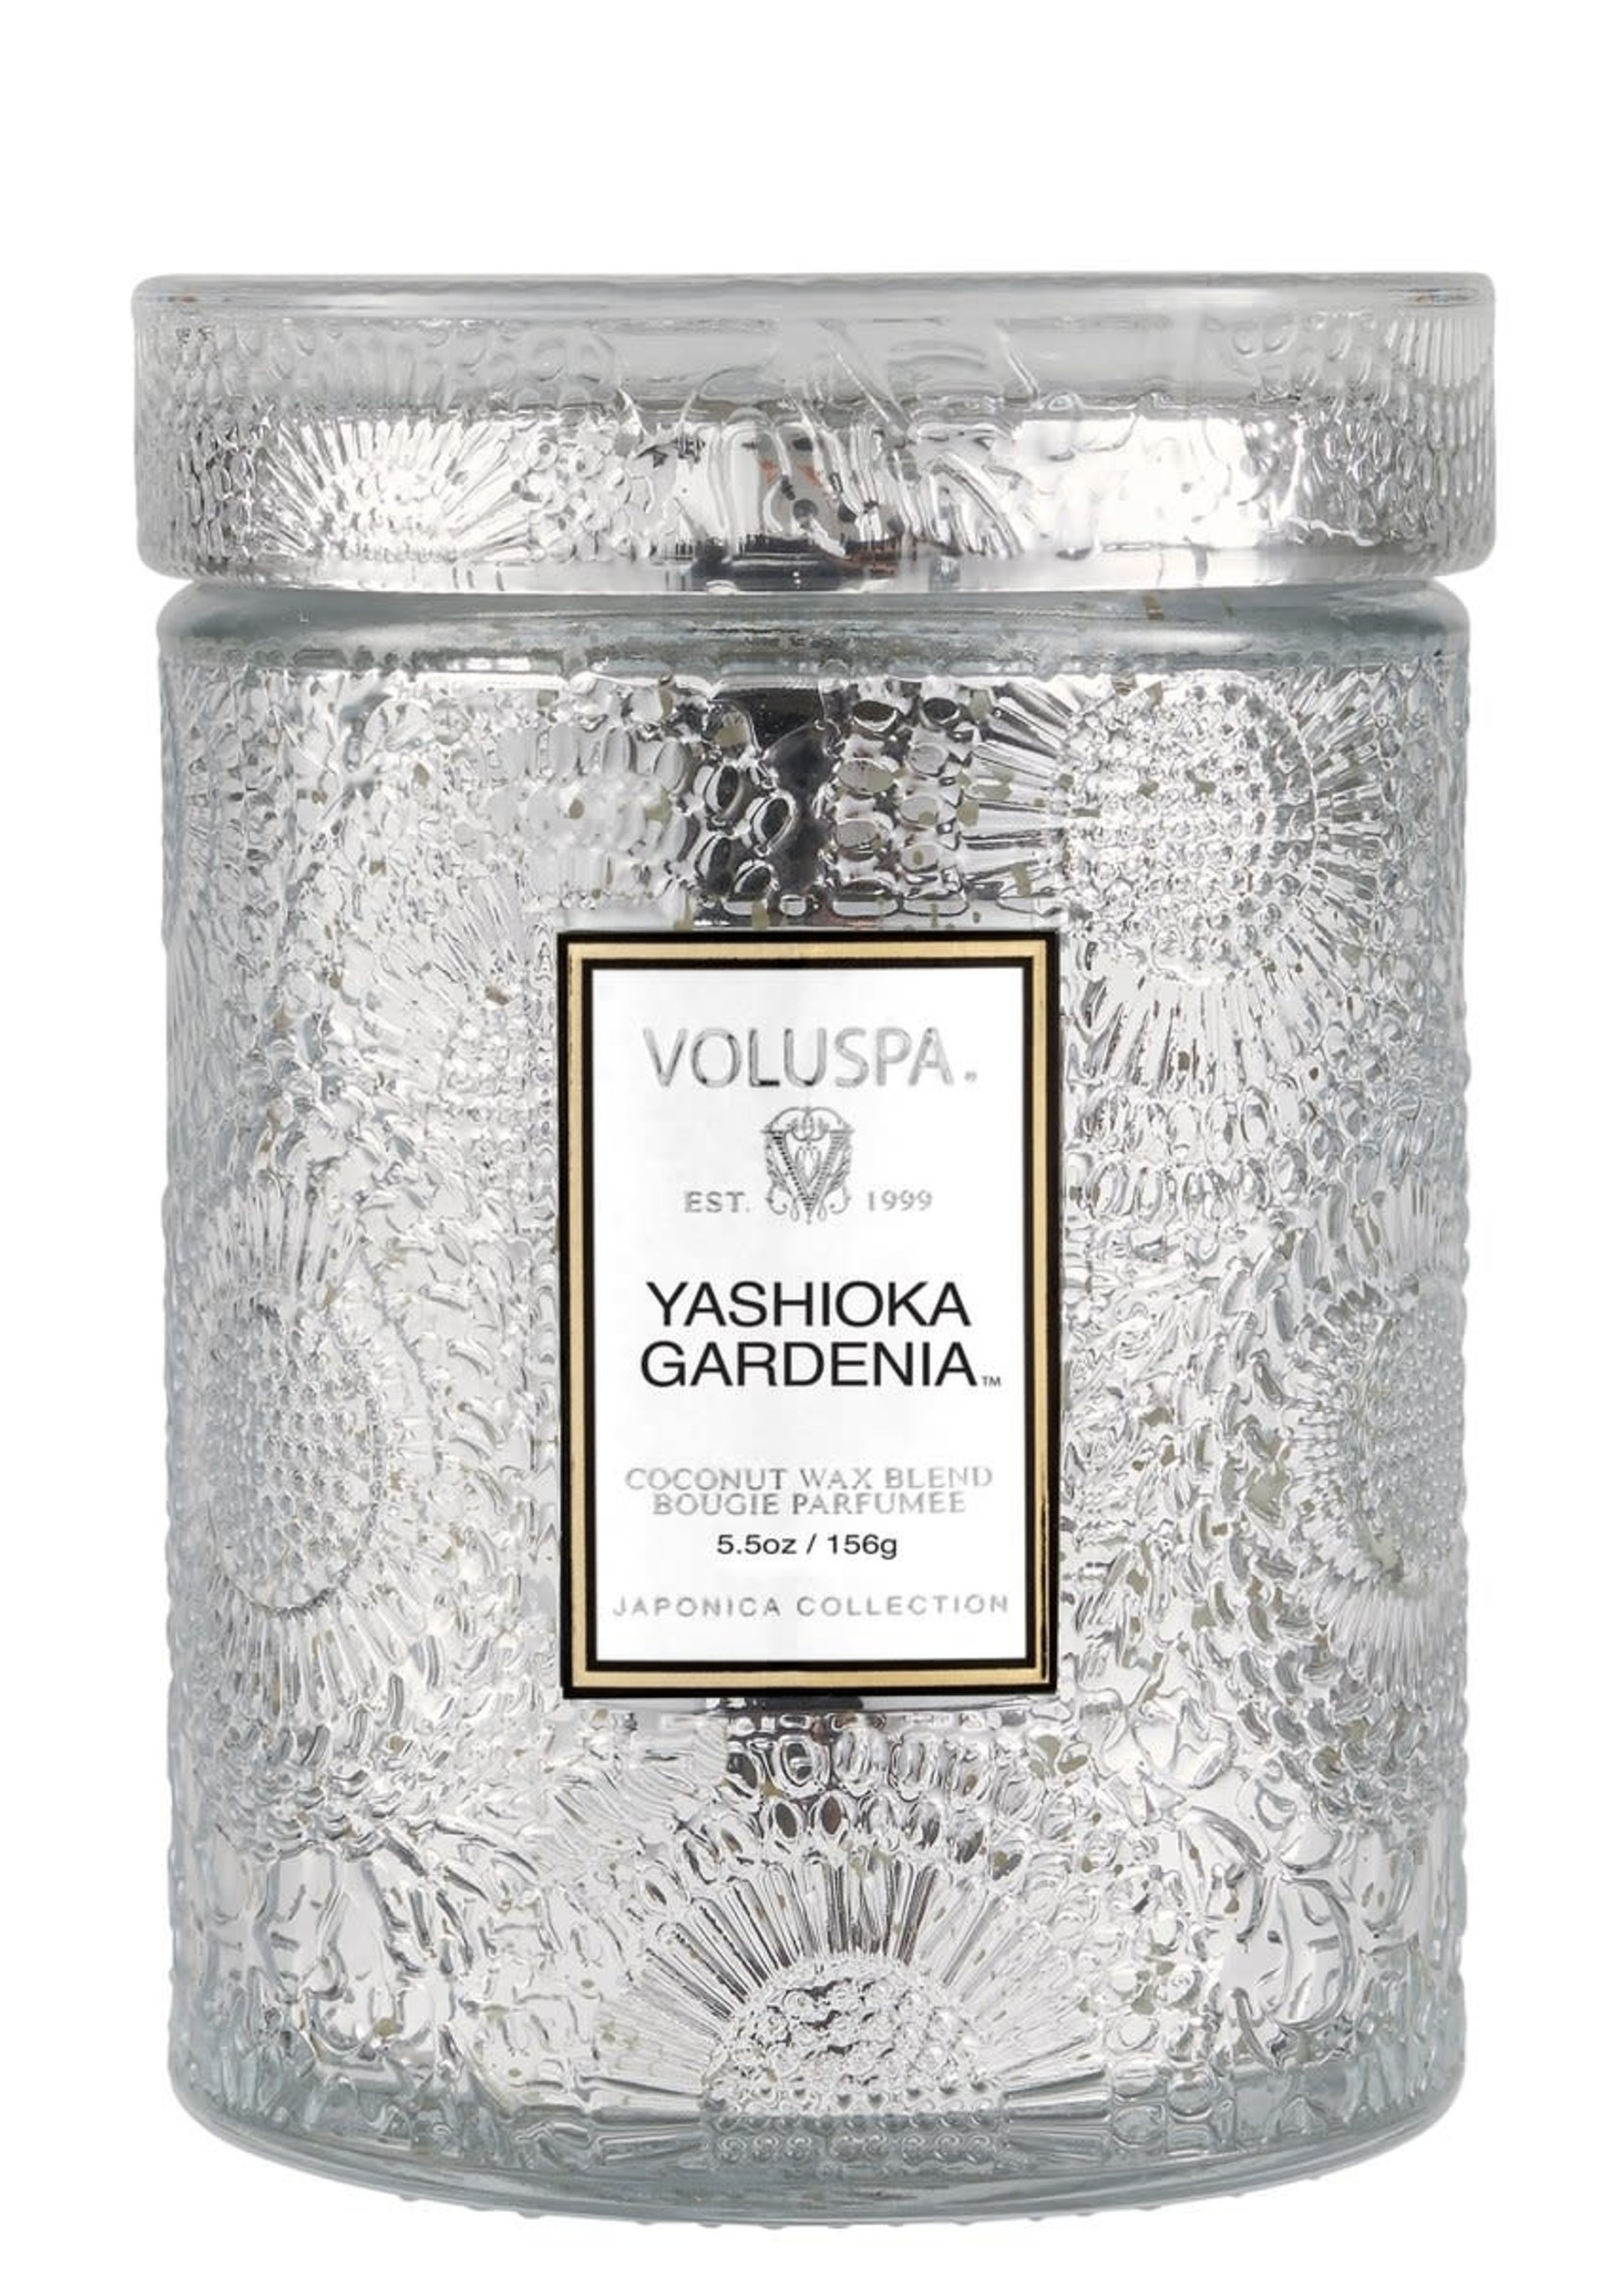 VOLUSPA VOLUSPA MIDI JAR YASHIOKA GARDENIA